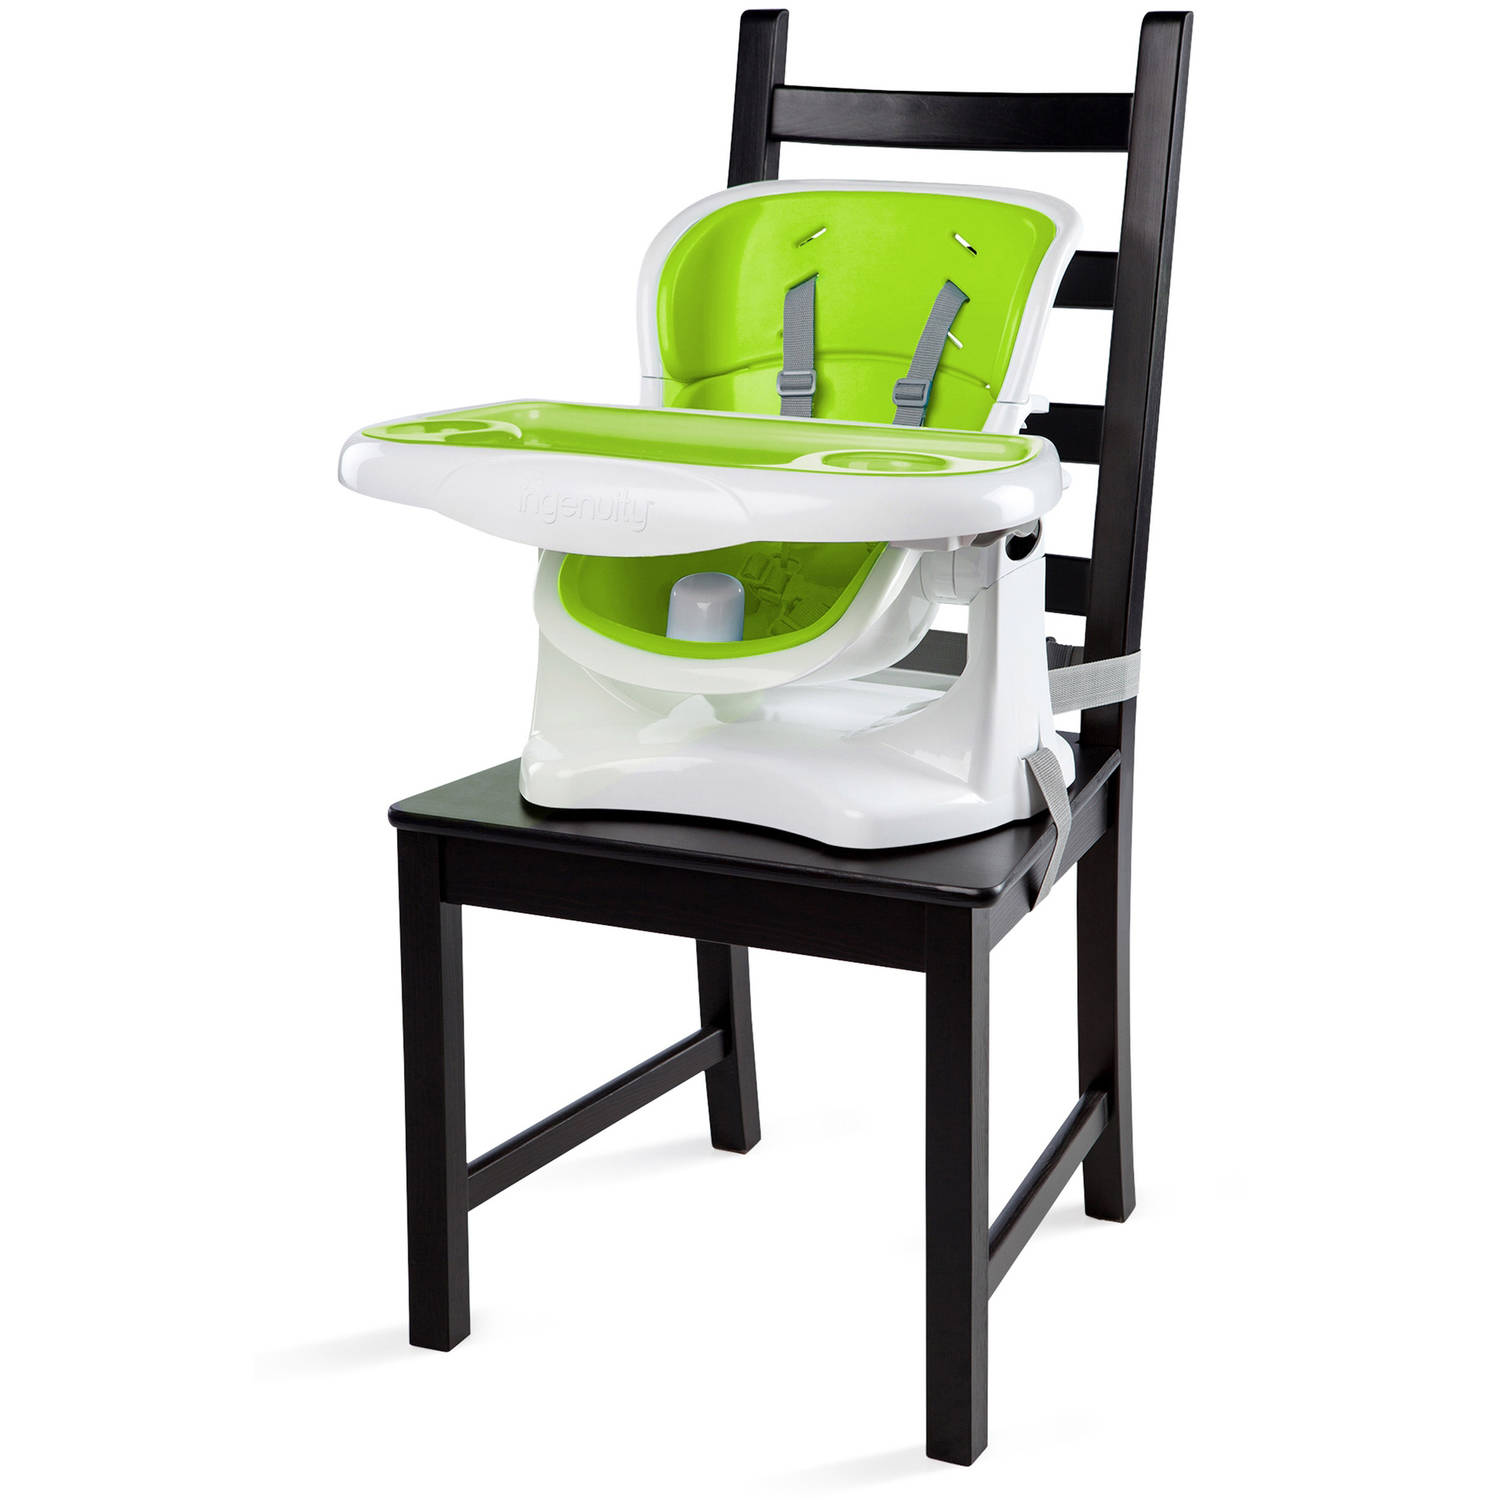 Ingenuity ChairMate SmartClean Chair Top High Chair, Lime